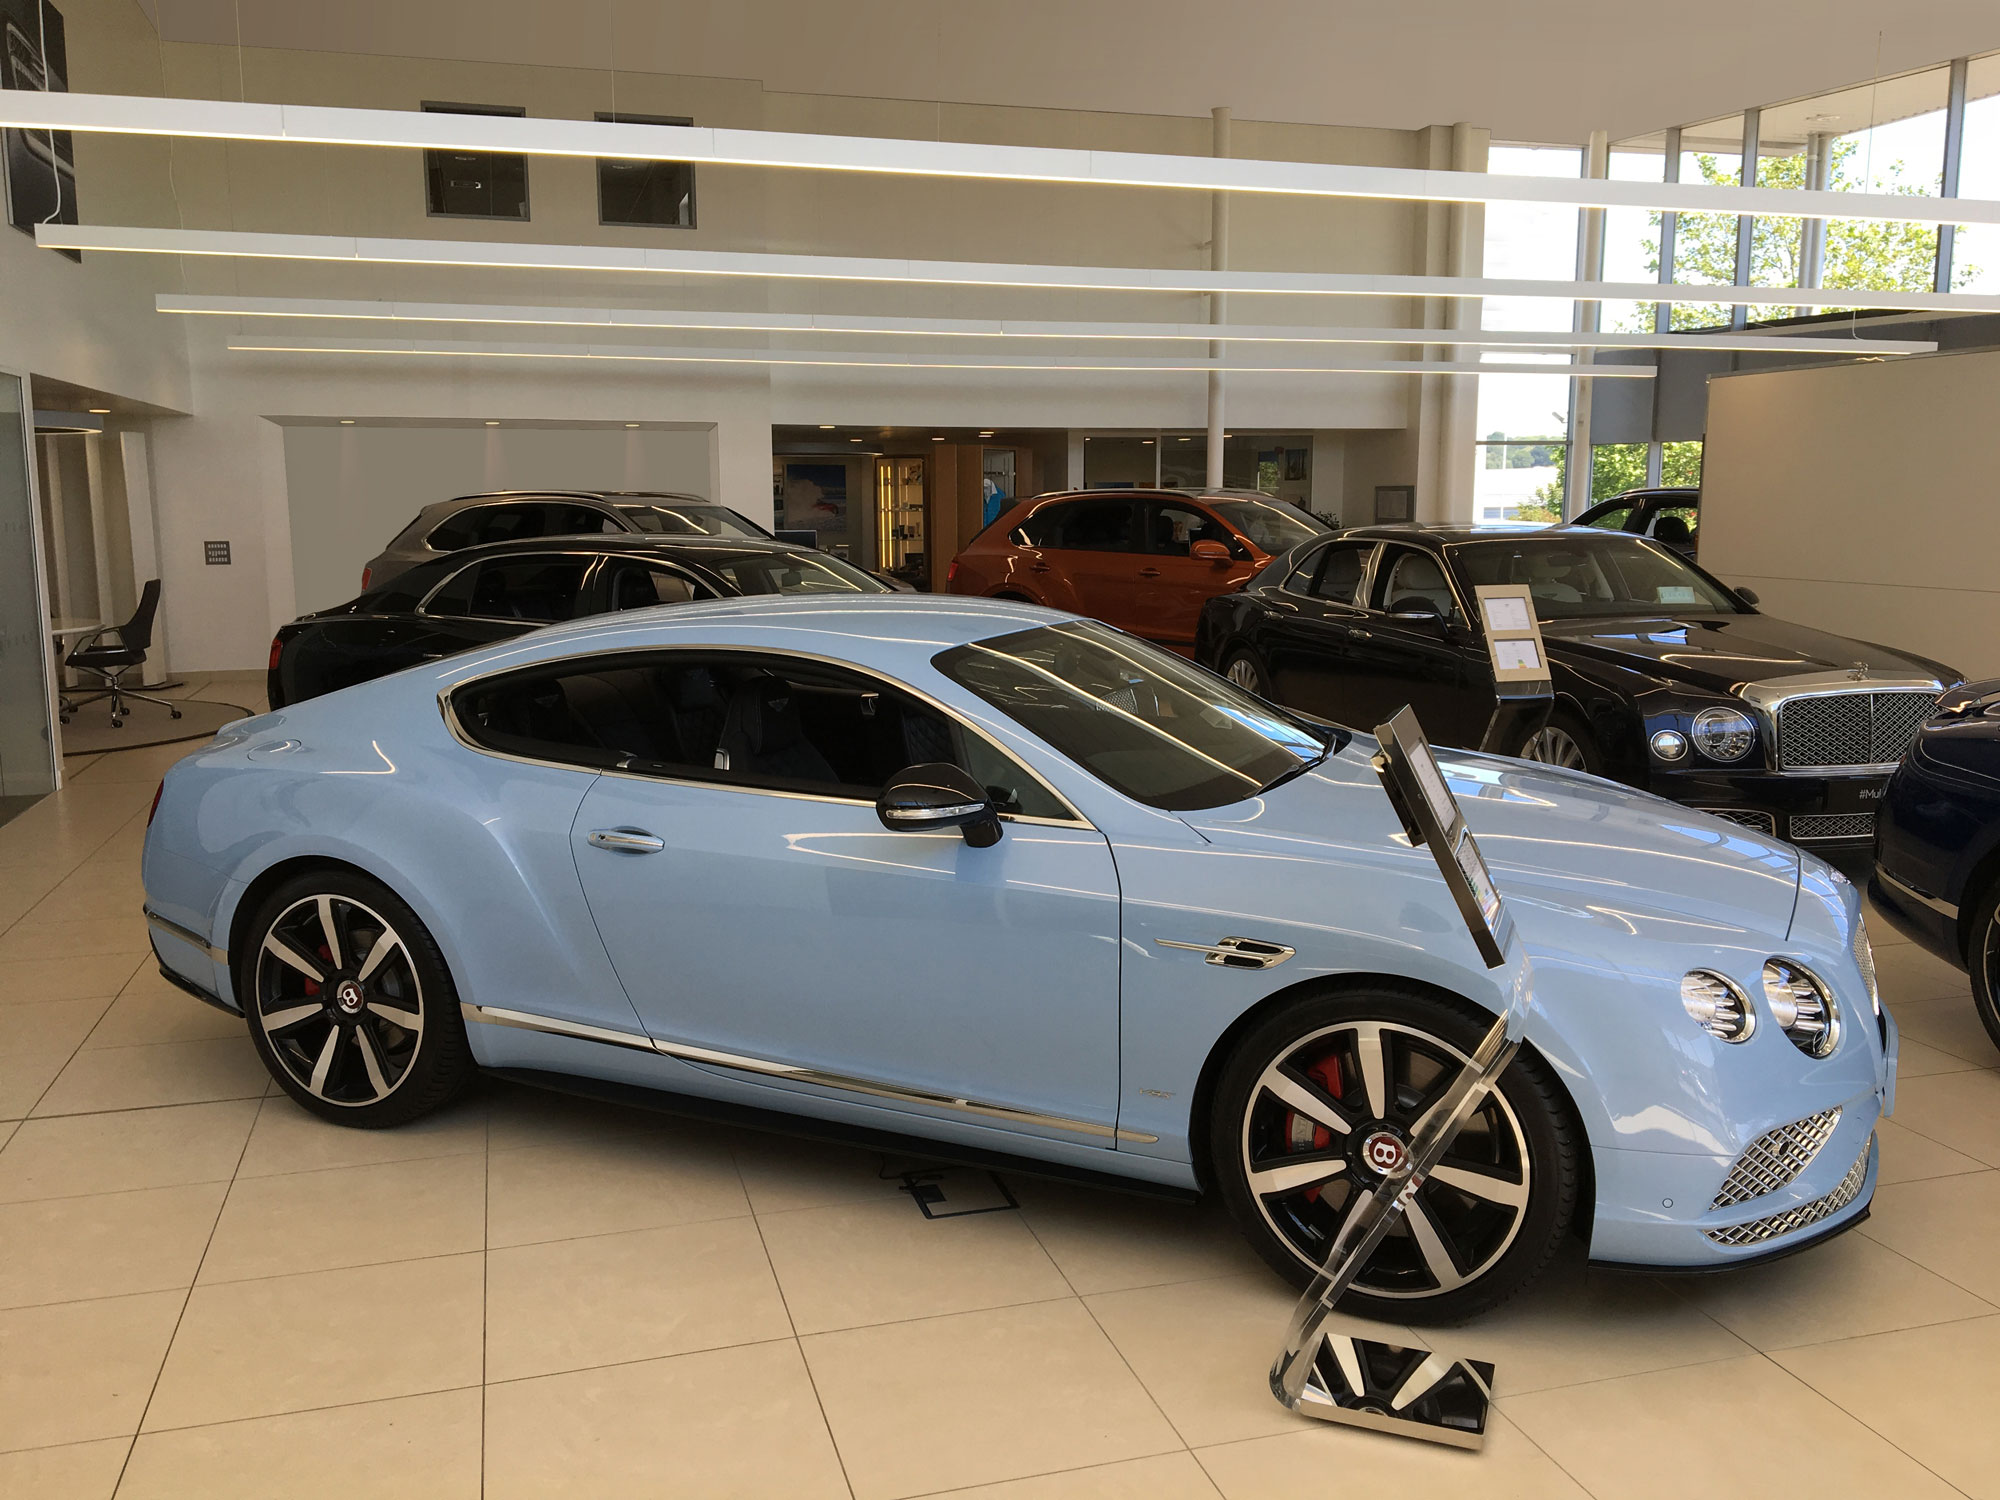 16-Bentley-Kent-Showroom.jpg